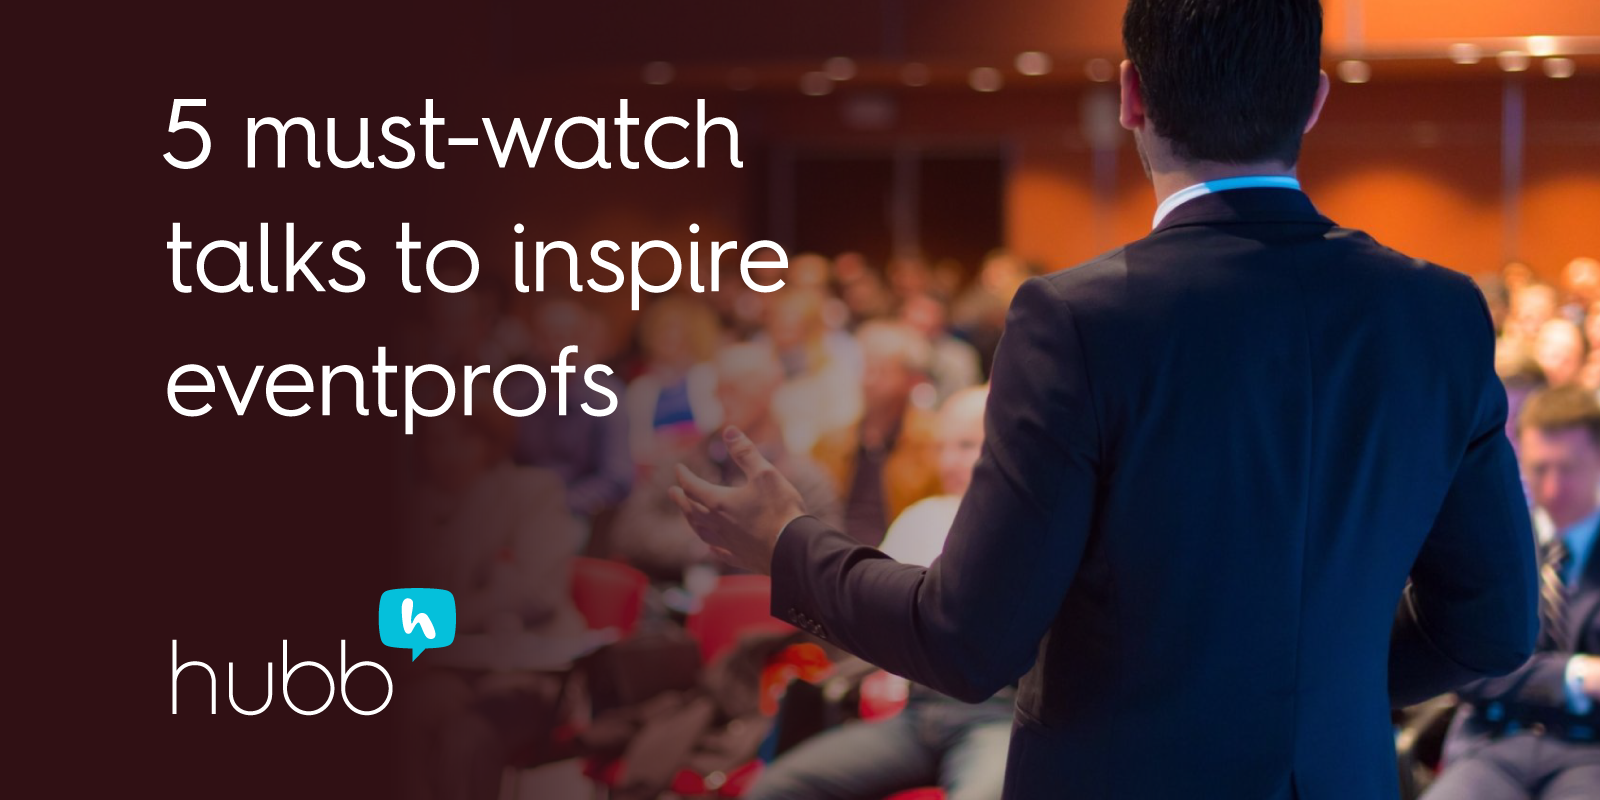 5 must-watch talks to inspire eventprofs